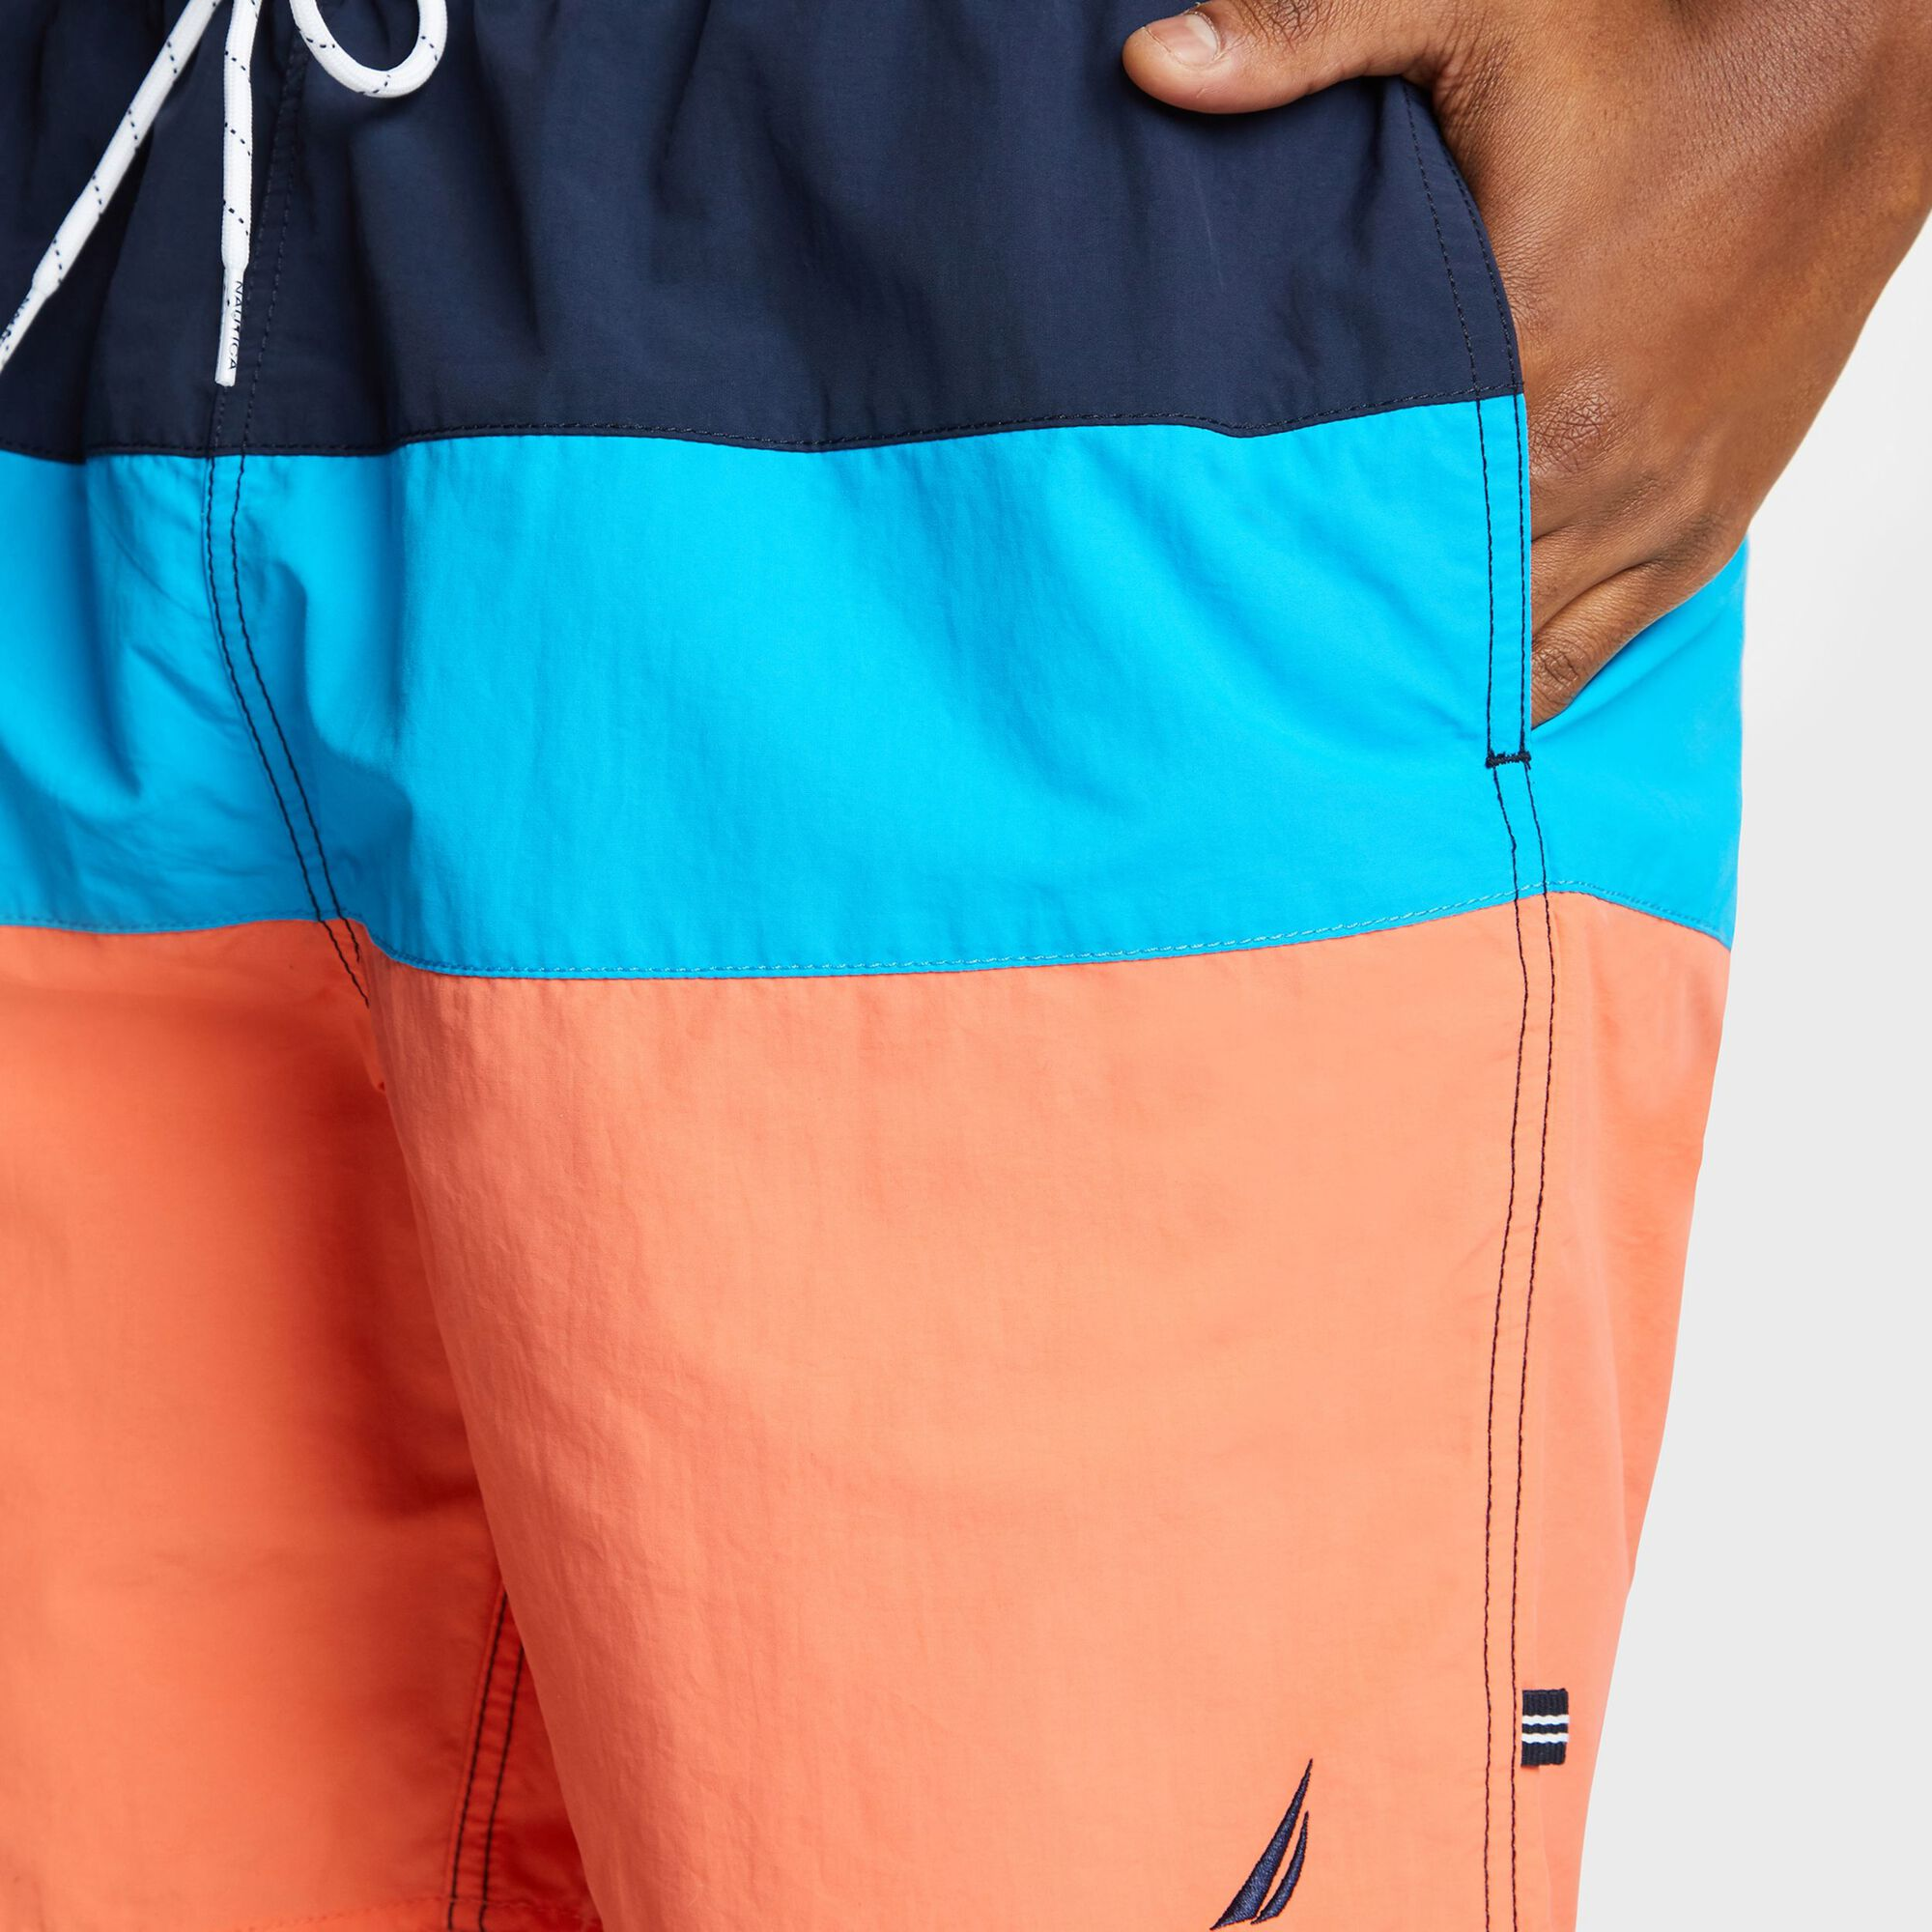 a70e0479f4 Big & Tall Anchor Colorblock Swim Shorts - 18